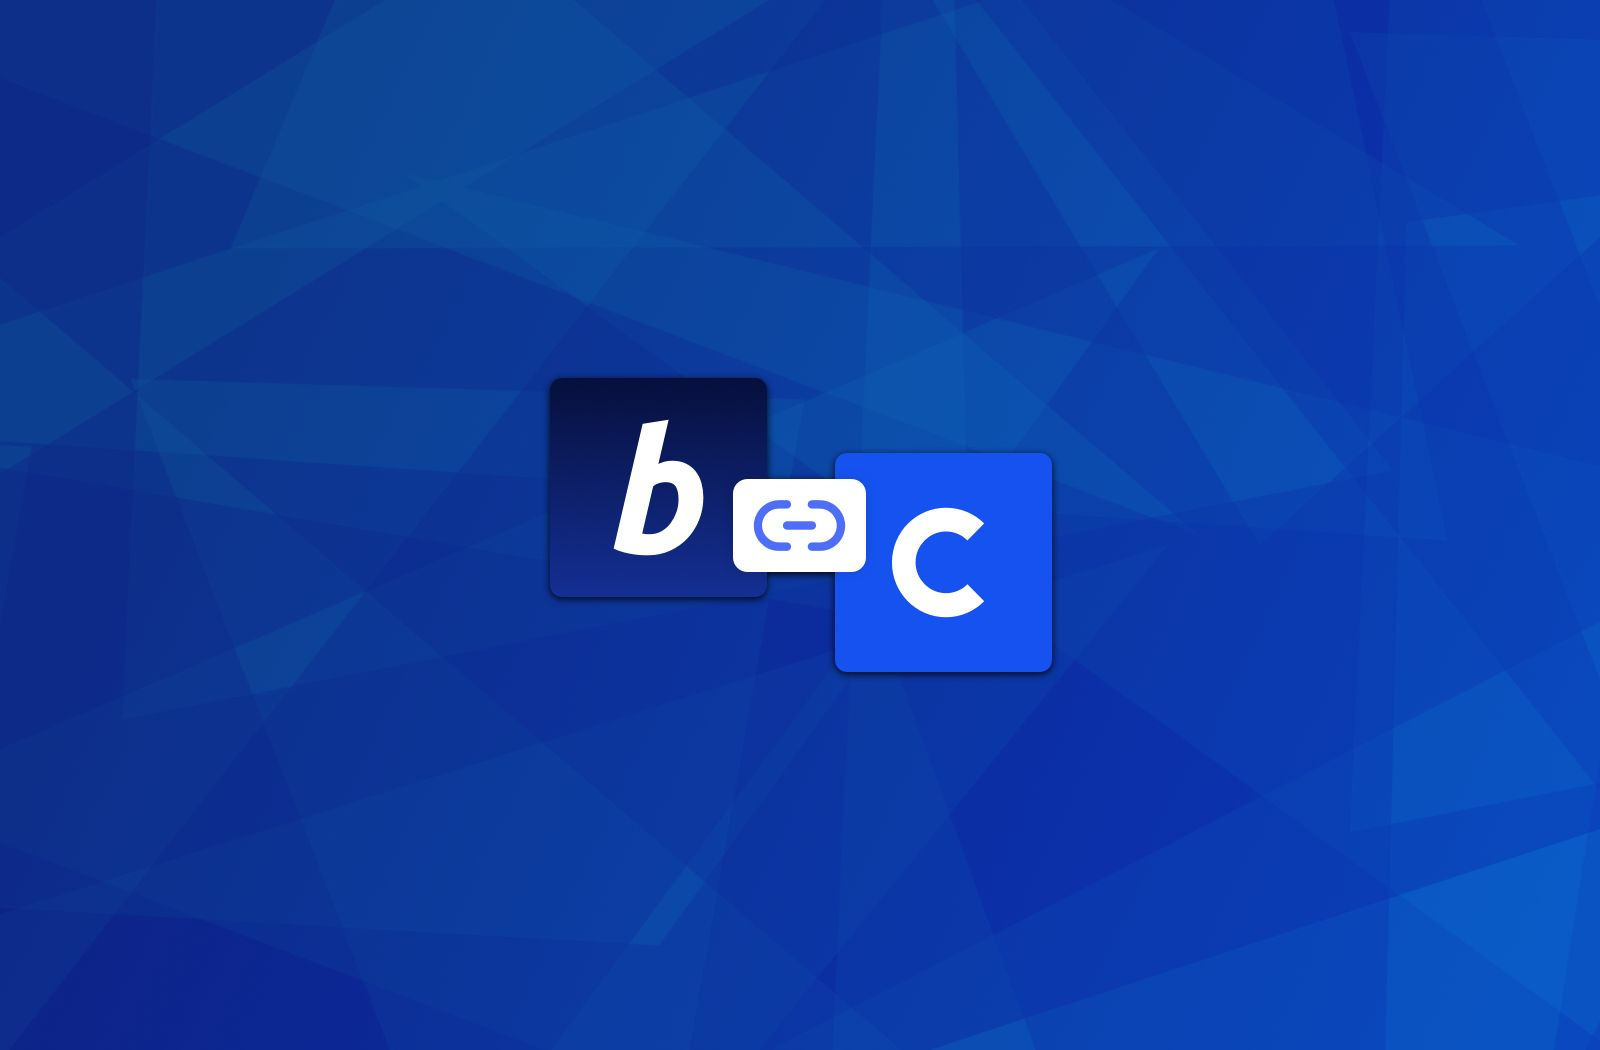 Coinbase users can now instantly pay BitPay merchants directly from their Coinbase account